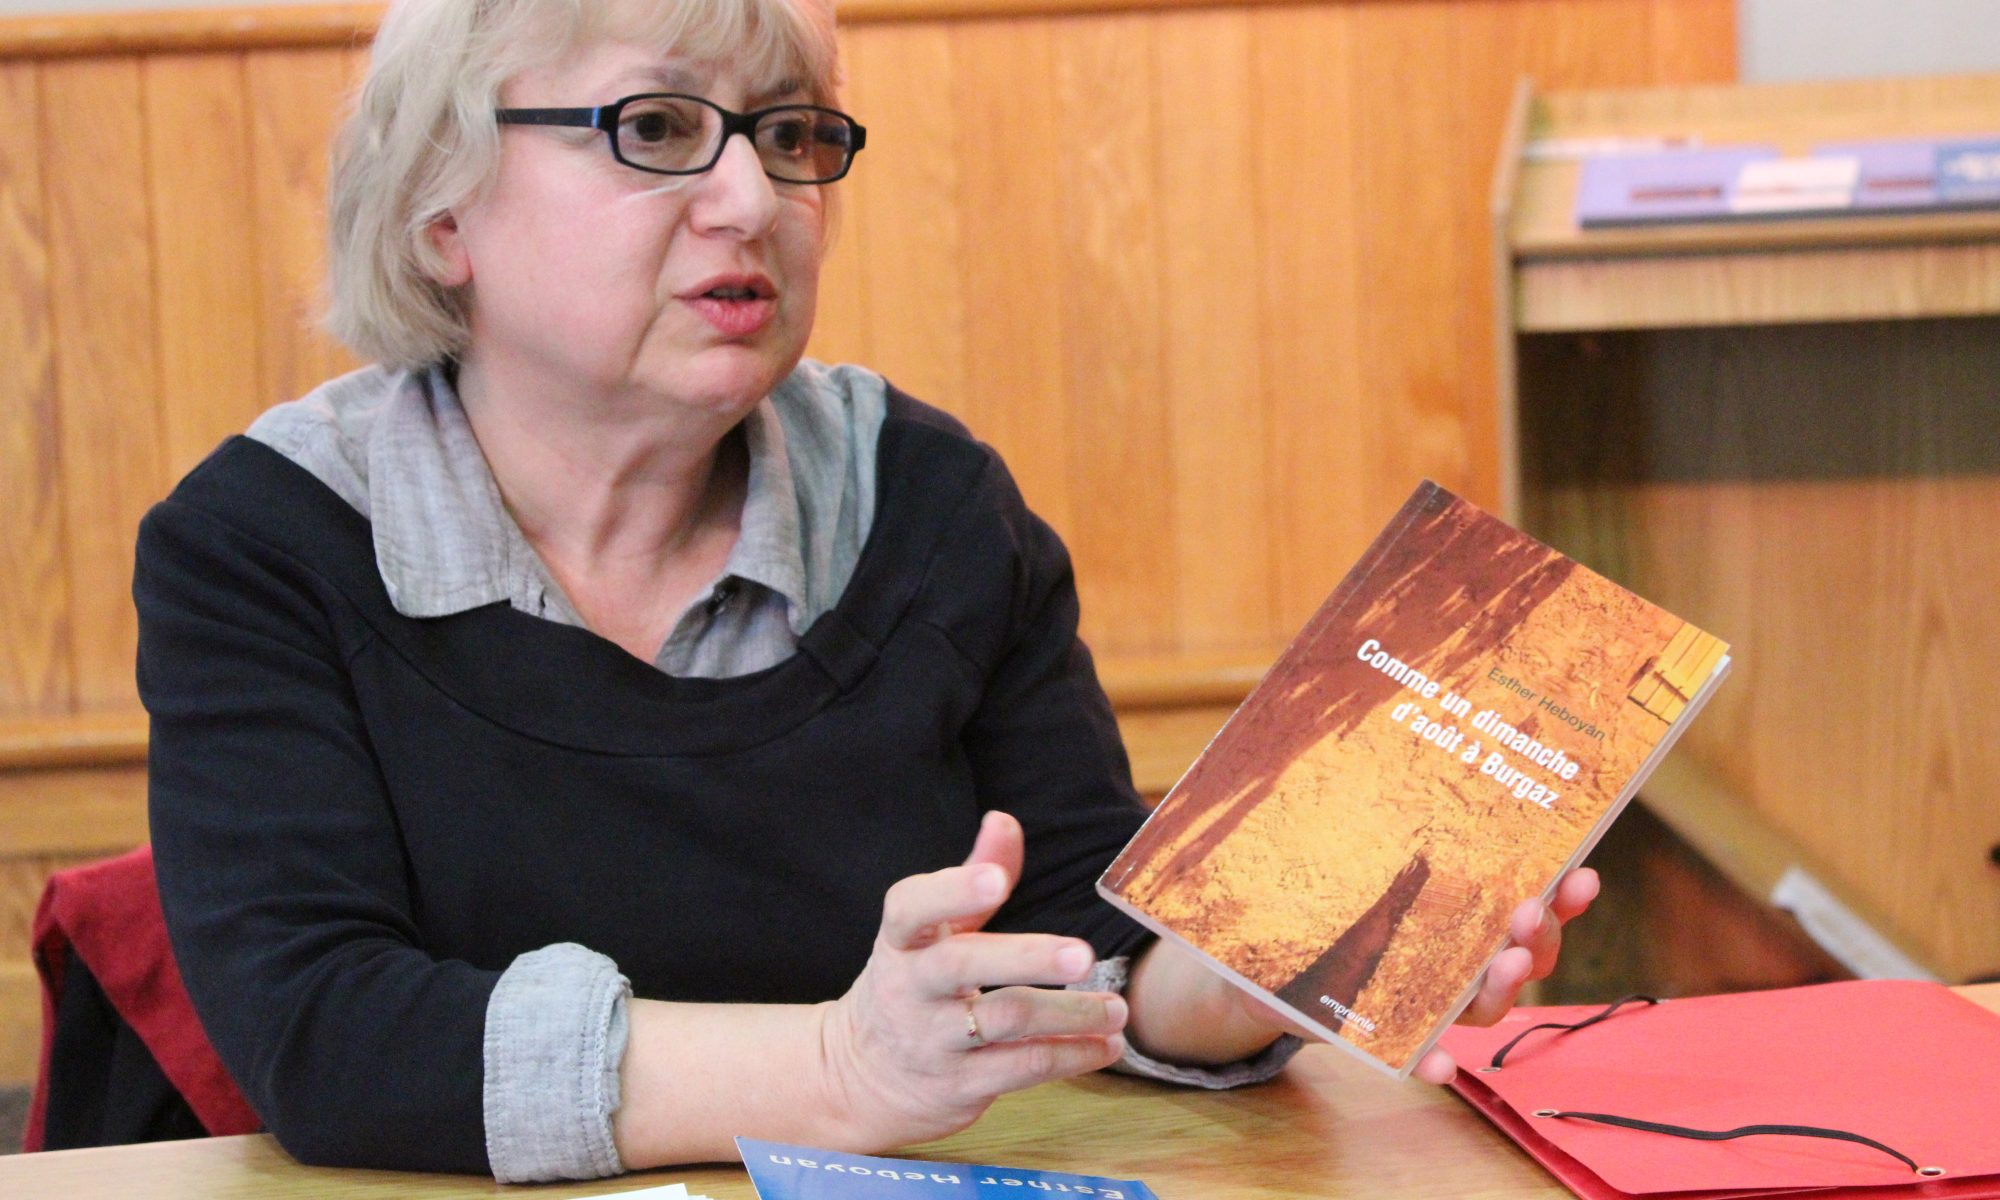 Esther Heboyan holding book and speking